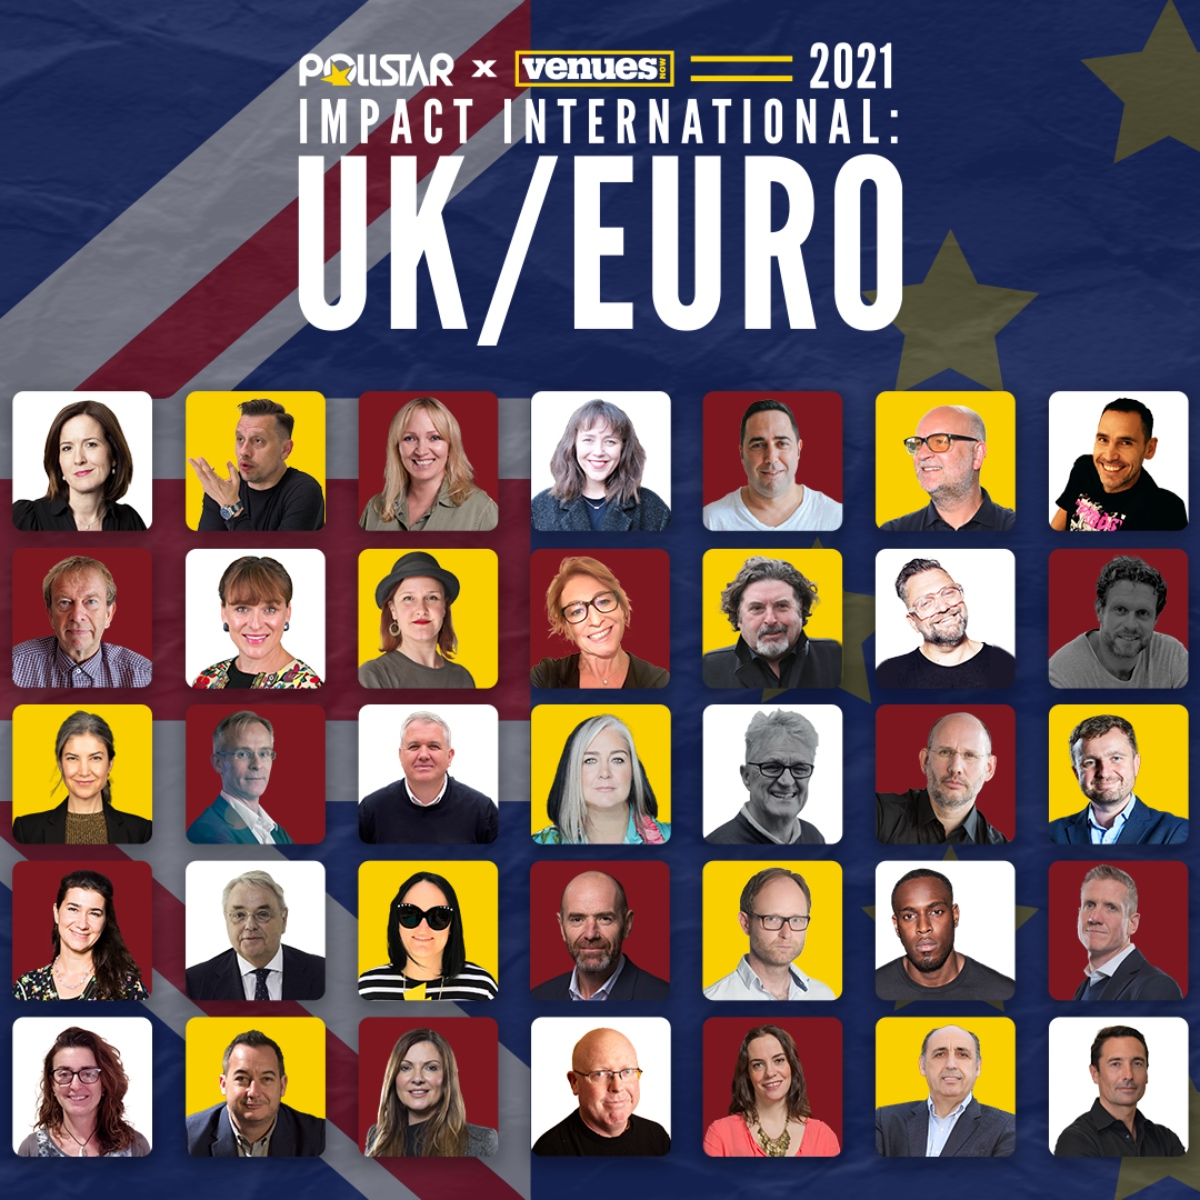 Pollstar x Venues Now - The 2021 Impact Intetnational UK Euro Honorees